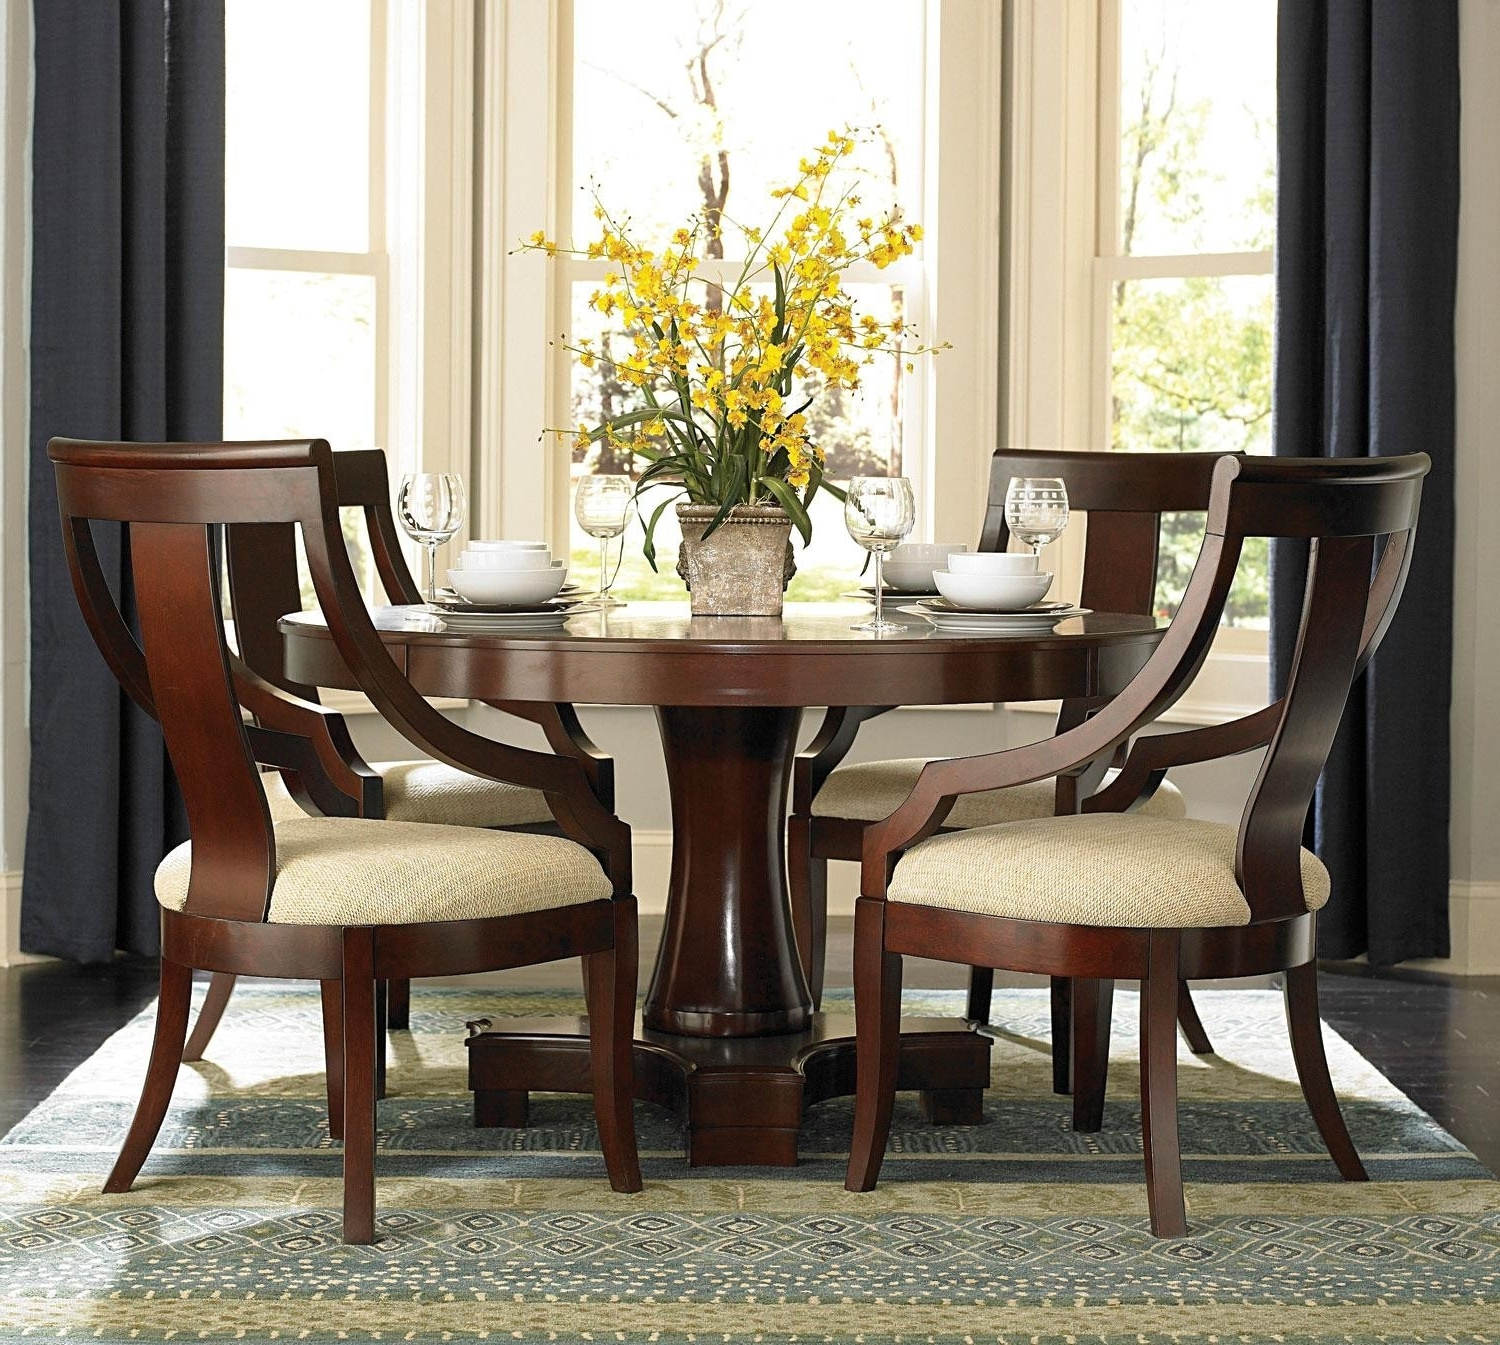 Most Recent Small Round Dining Table For 4 Awesome Round Kitchen Table With 4 Throughout Circular Dining Tables For  (View 16 of 25)